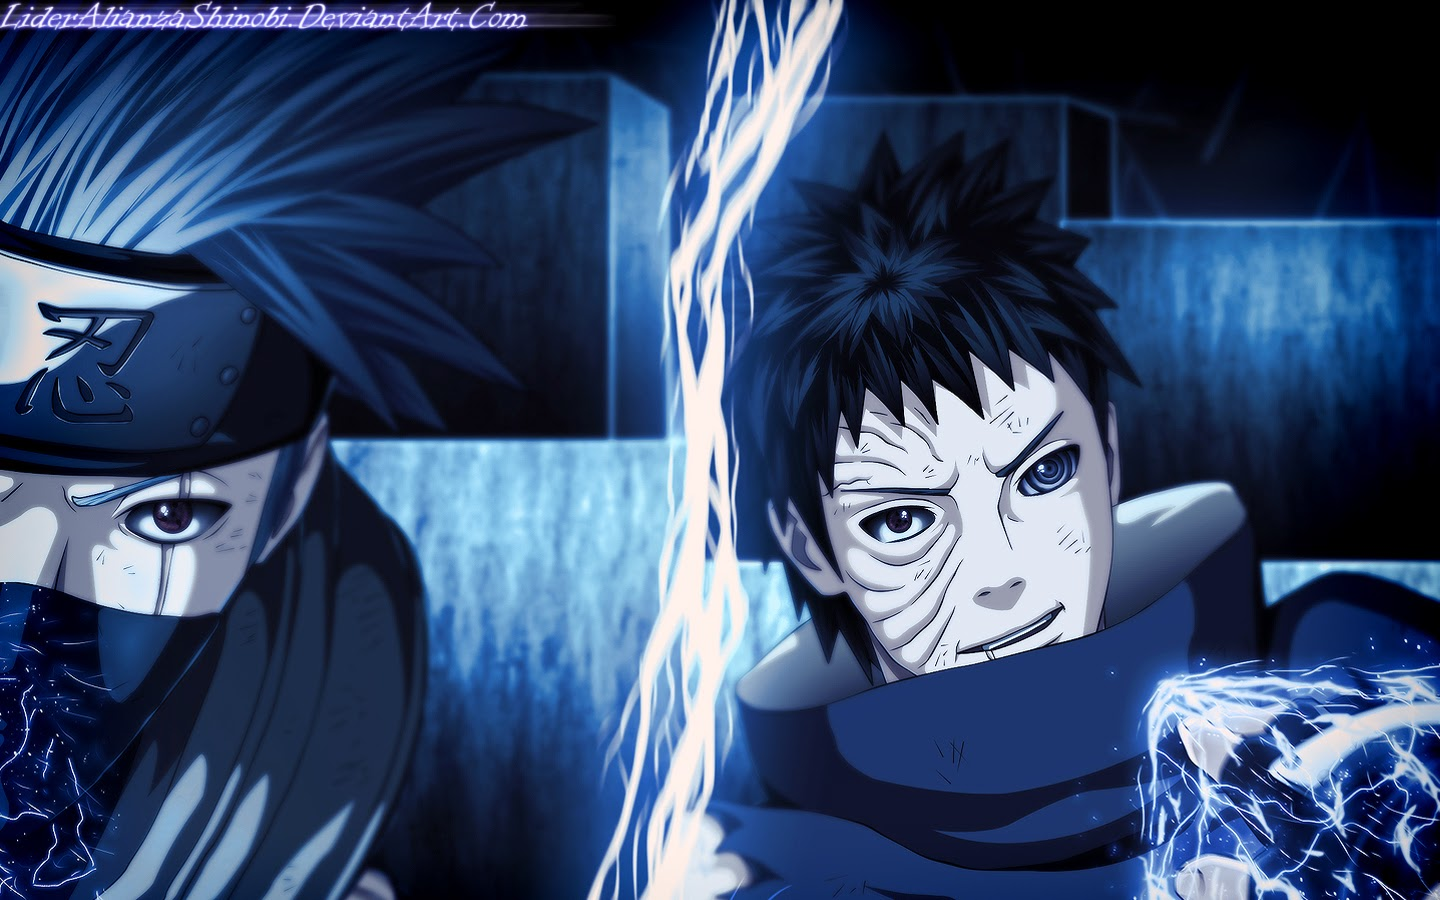 Hatake Kakashi vs Obito Uchiha Fightin HD Wallpaper Deviant Art 1440x900